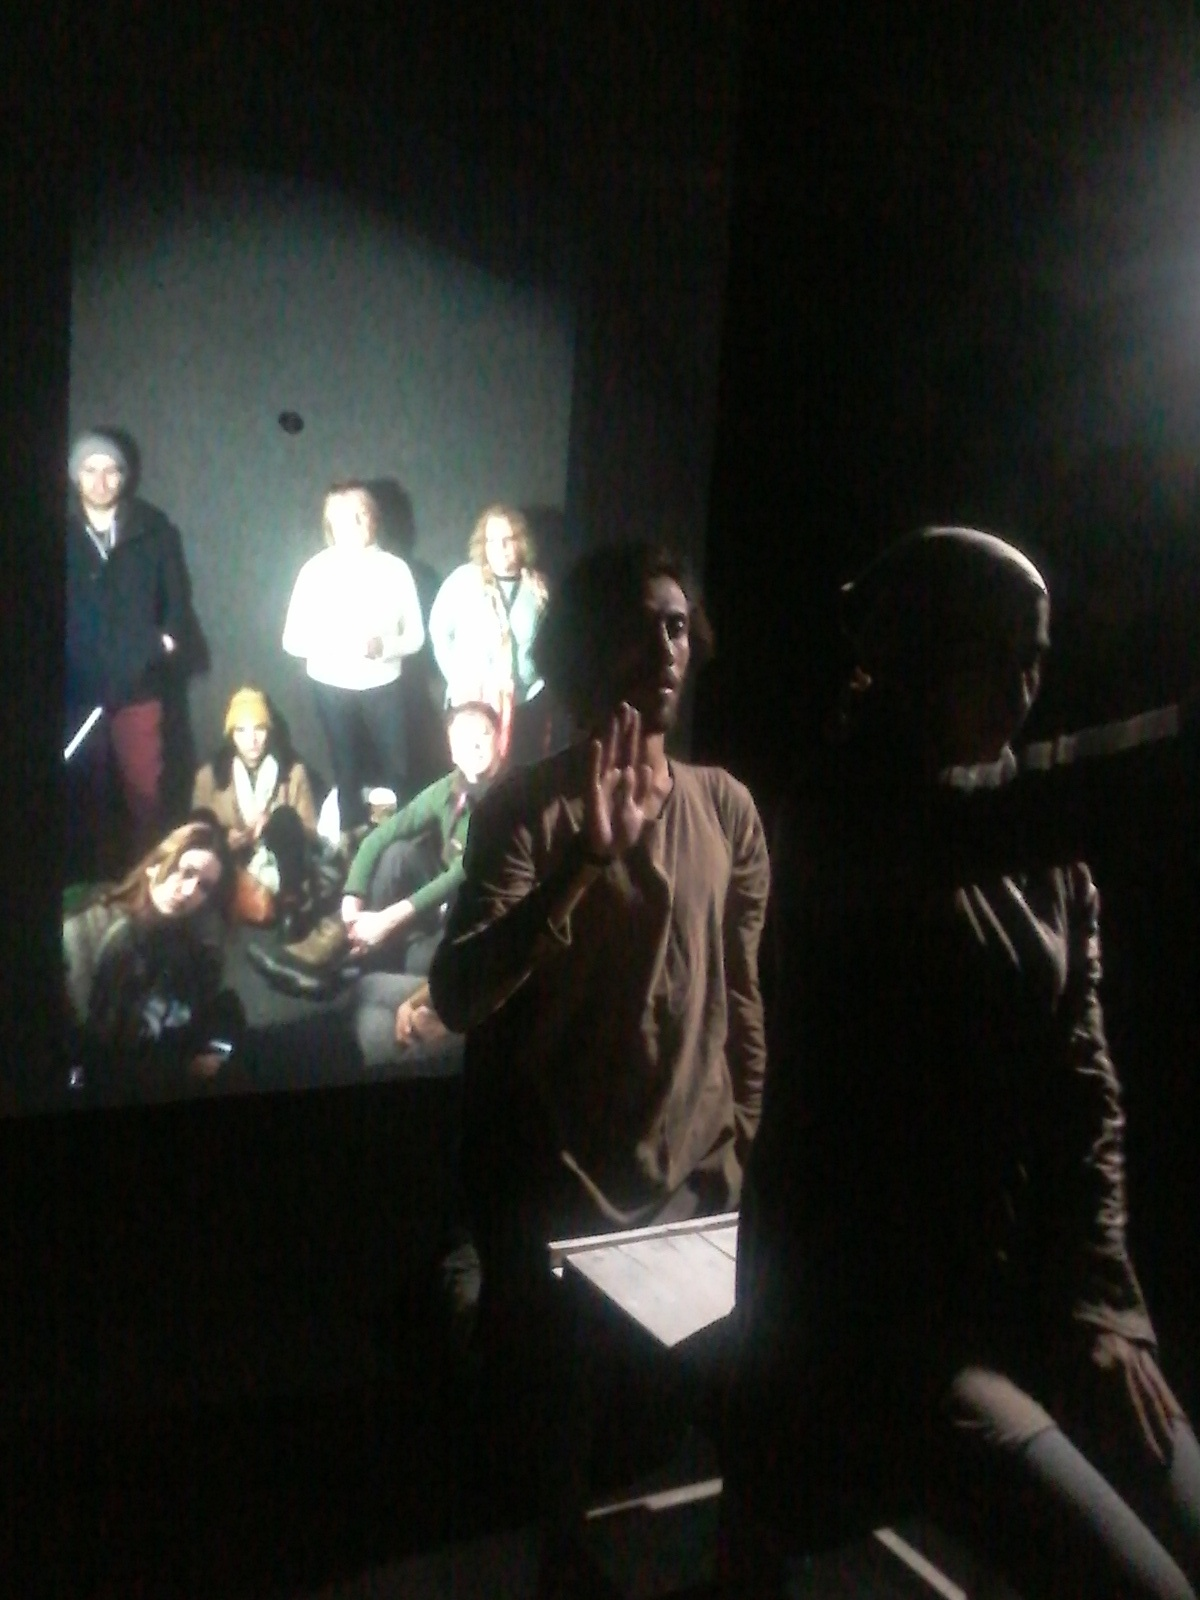 Movement piece curated for the Portal by Isfahan artists for audience at Sundance Film Festival